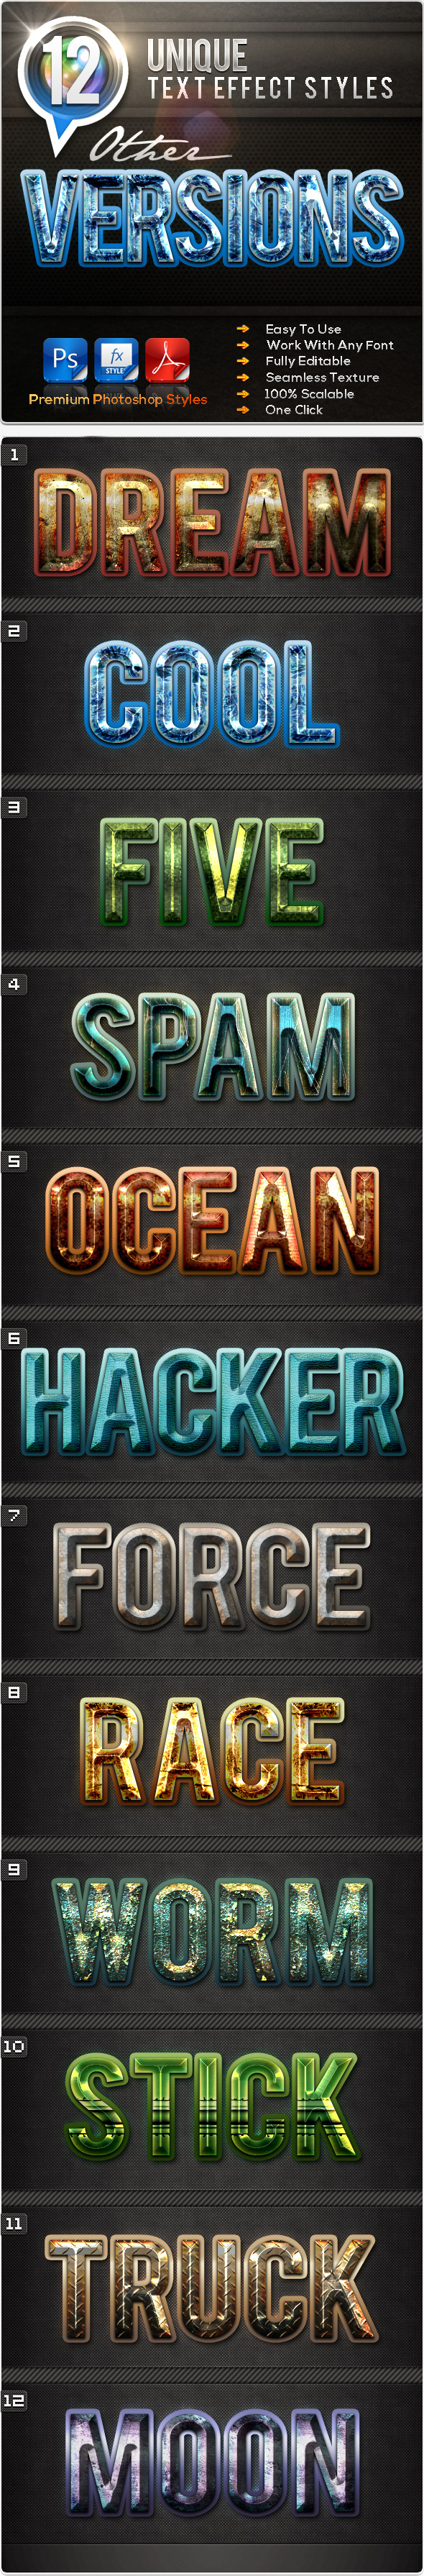 12 Unique Other Versions - Text Effects Styles